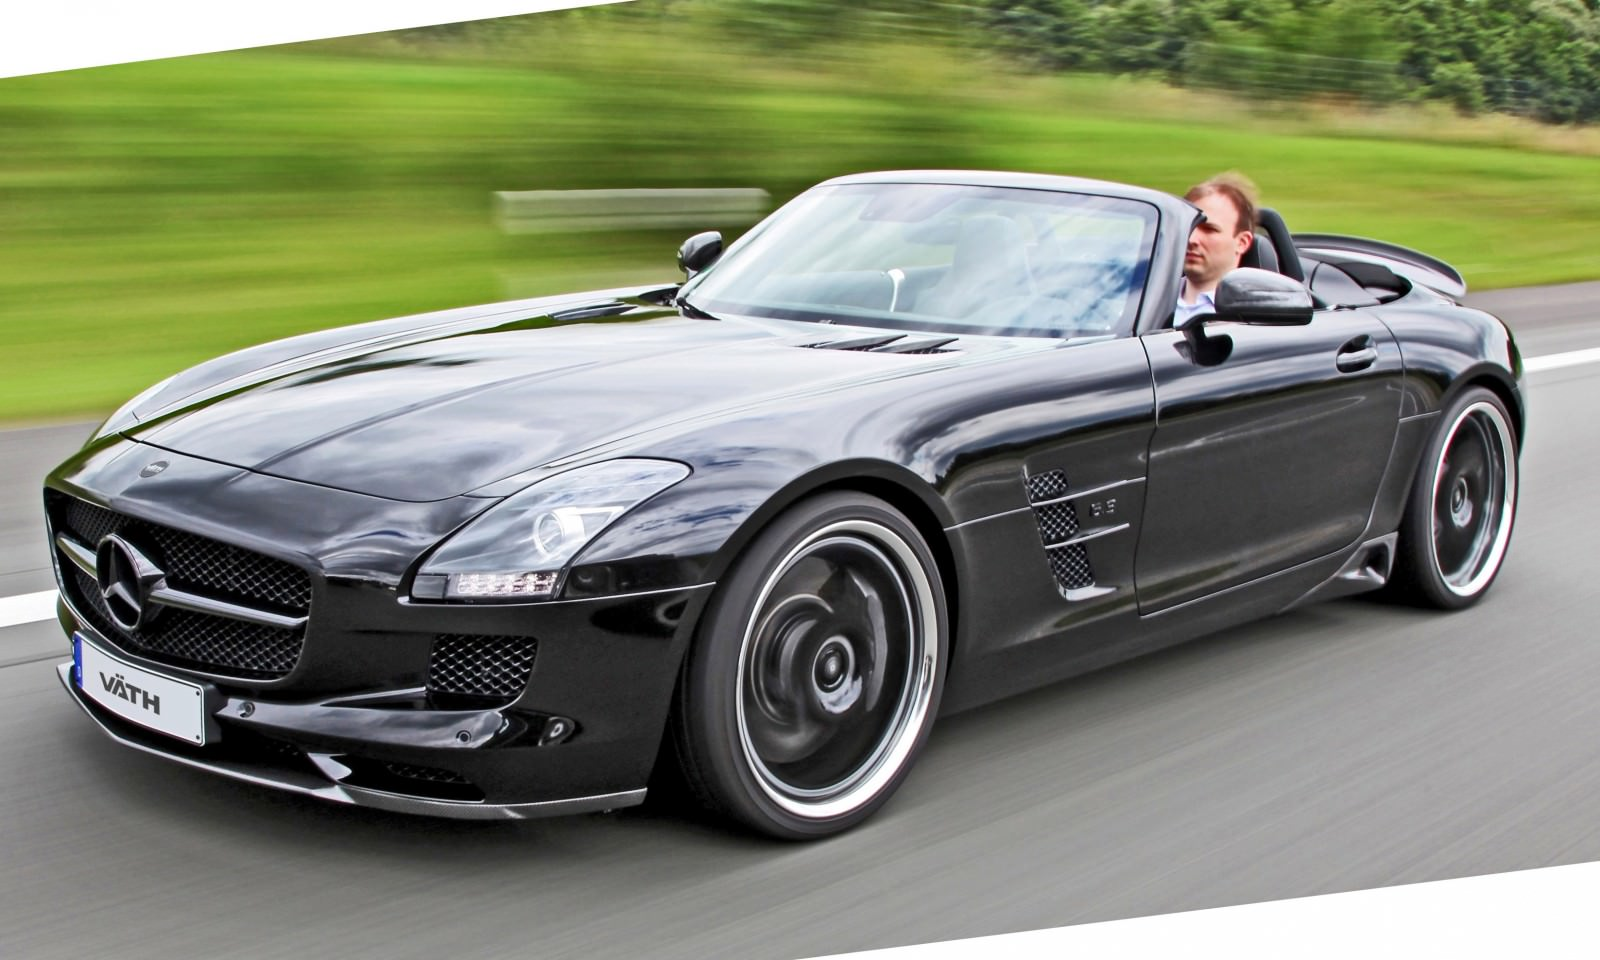 vath blacks out sls amg roadster 9 car revs. Black Bedroom Furniture Sets. Home Design Ideas